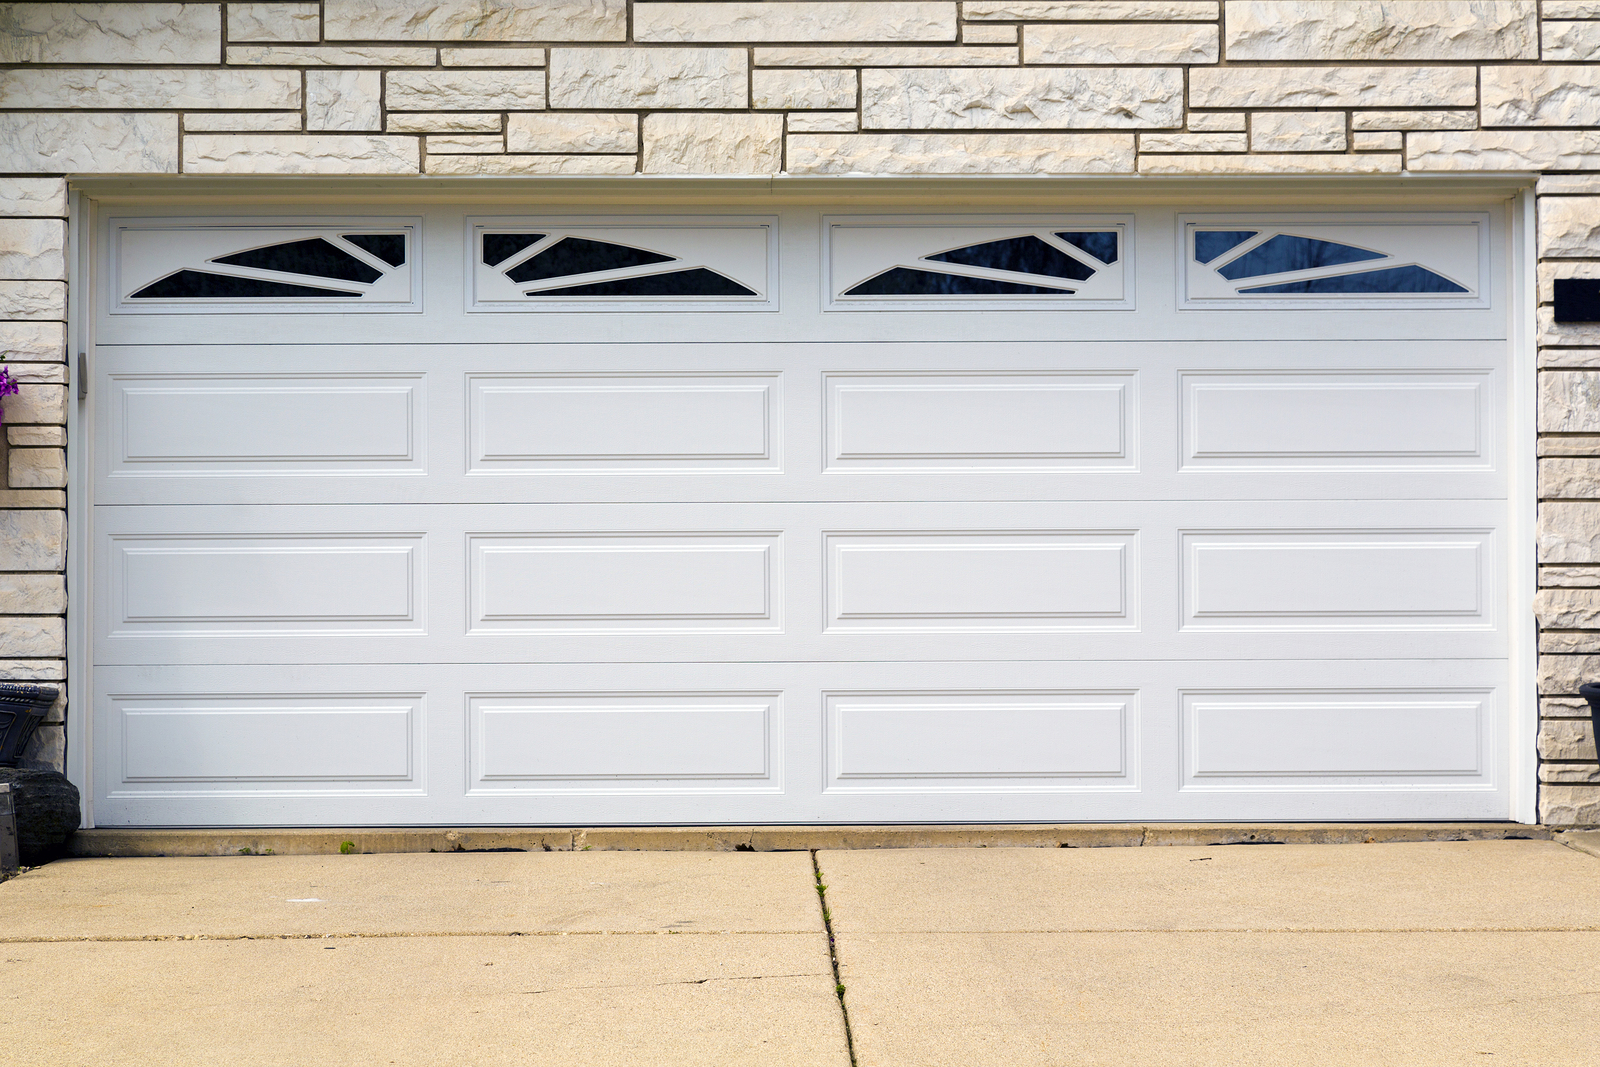 1067 #926D39  Reasons To Choose A Sectional Garage Door Blog Sectional Garage Door save image Garage Sectional Doors 37071600